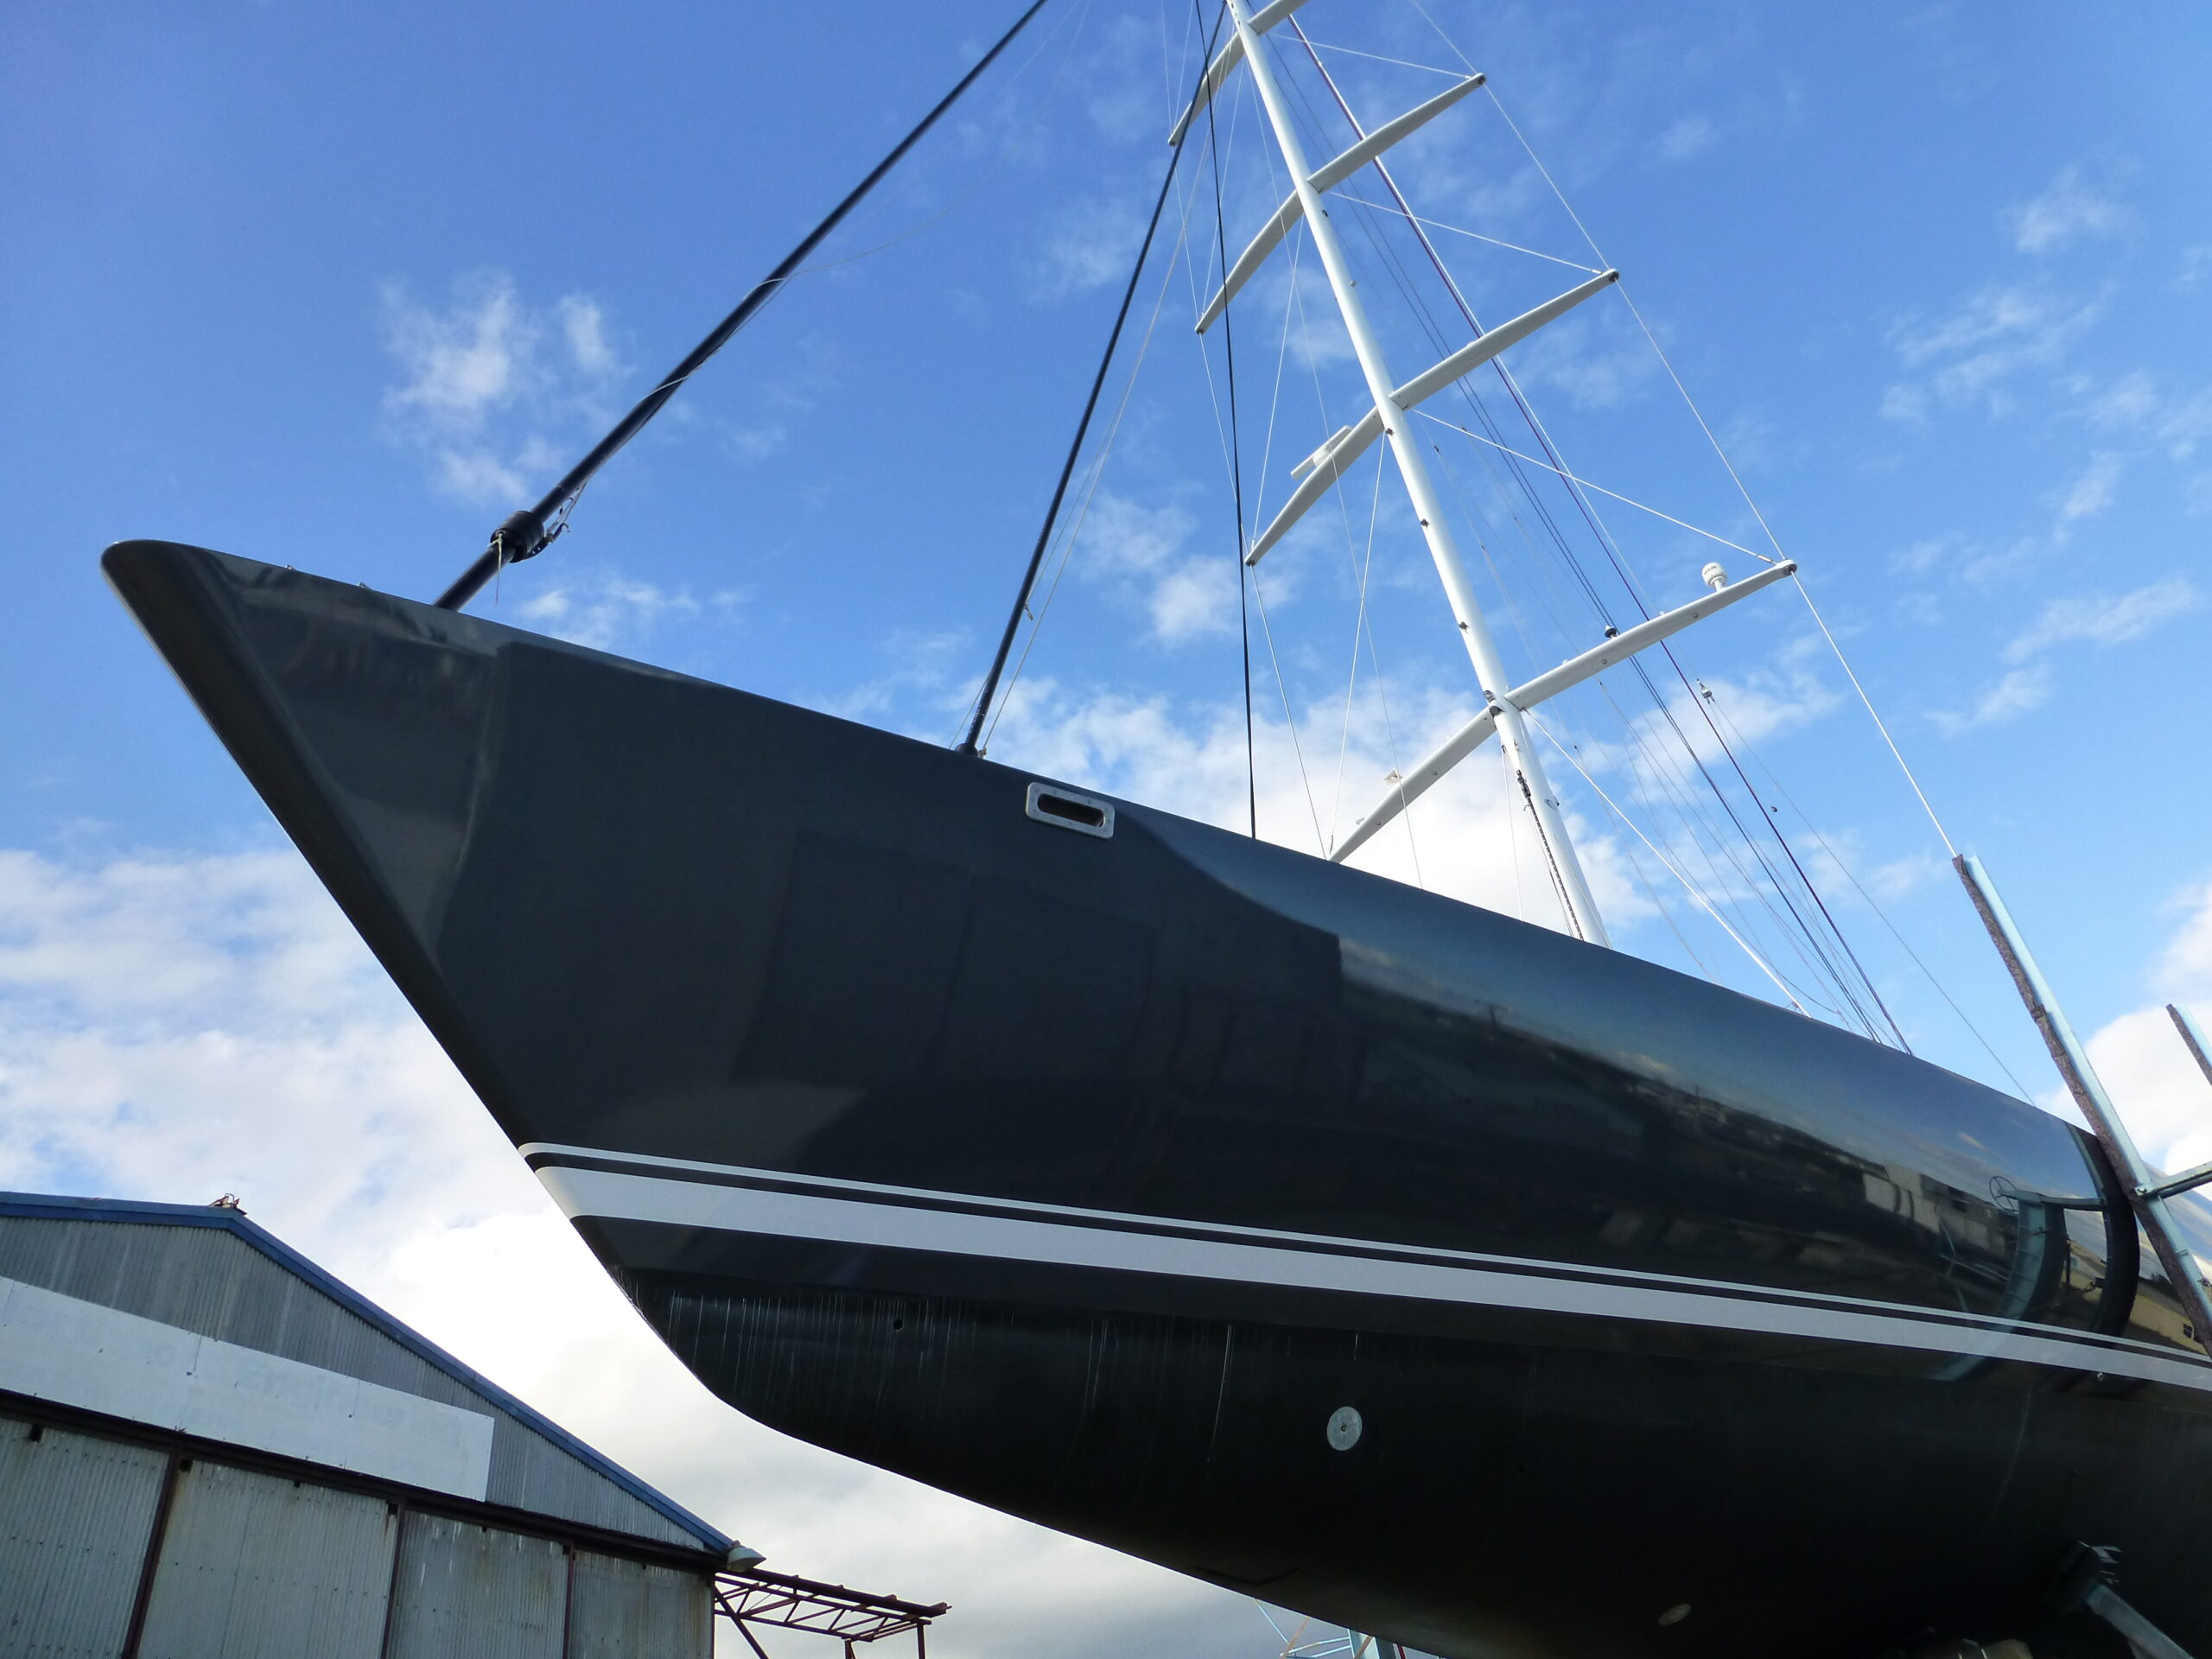 Oceania Marine Shipyard - 37M Dubois - Ready for Relaunch (14)